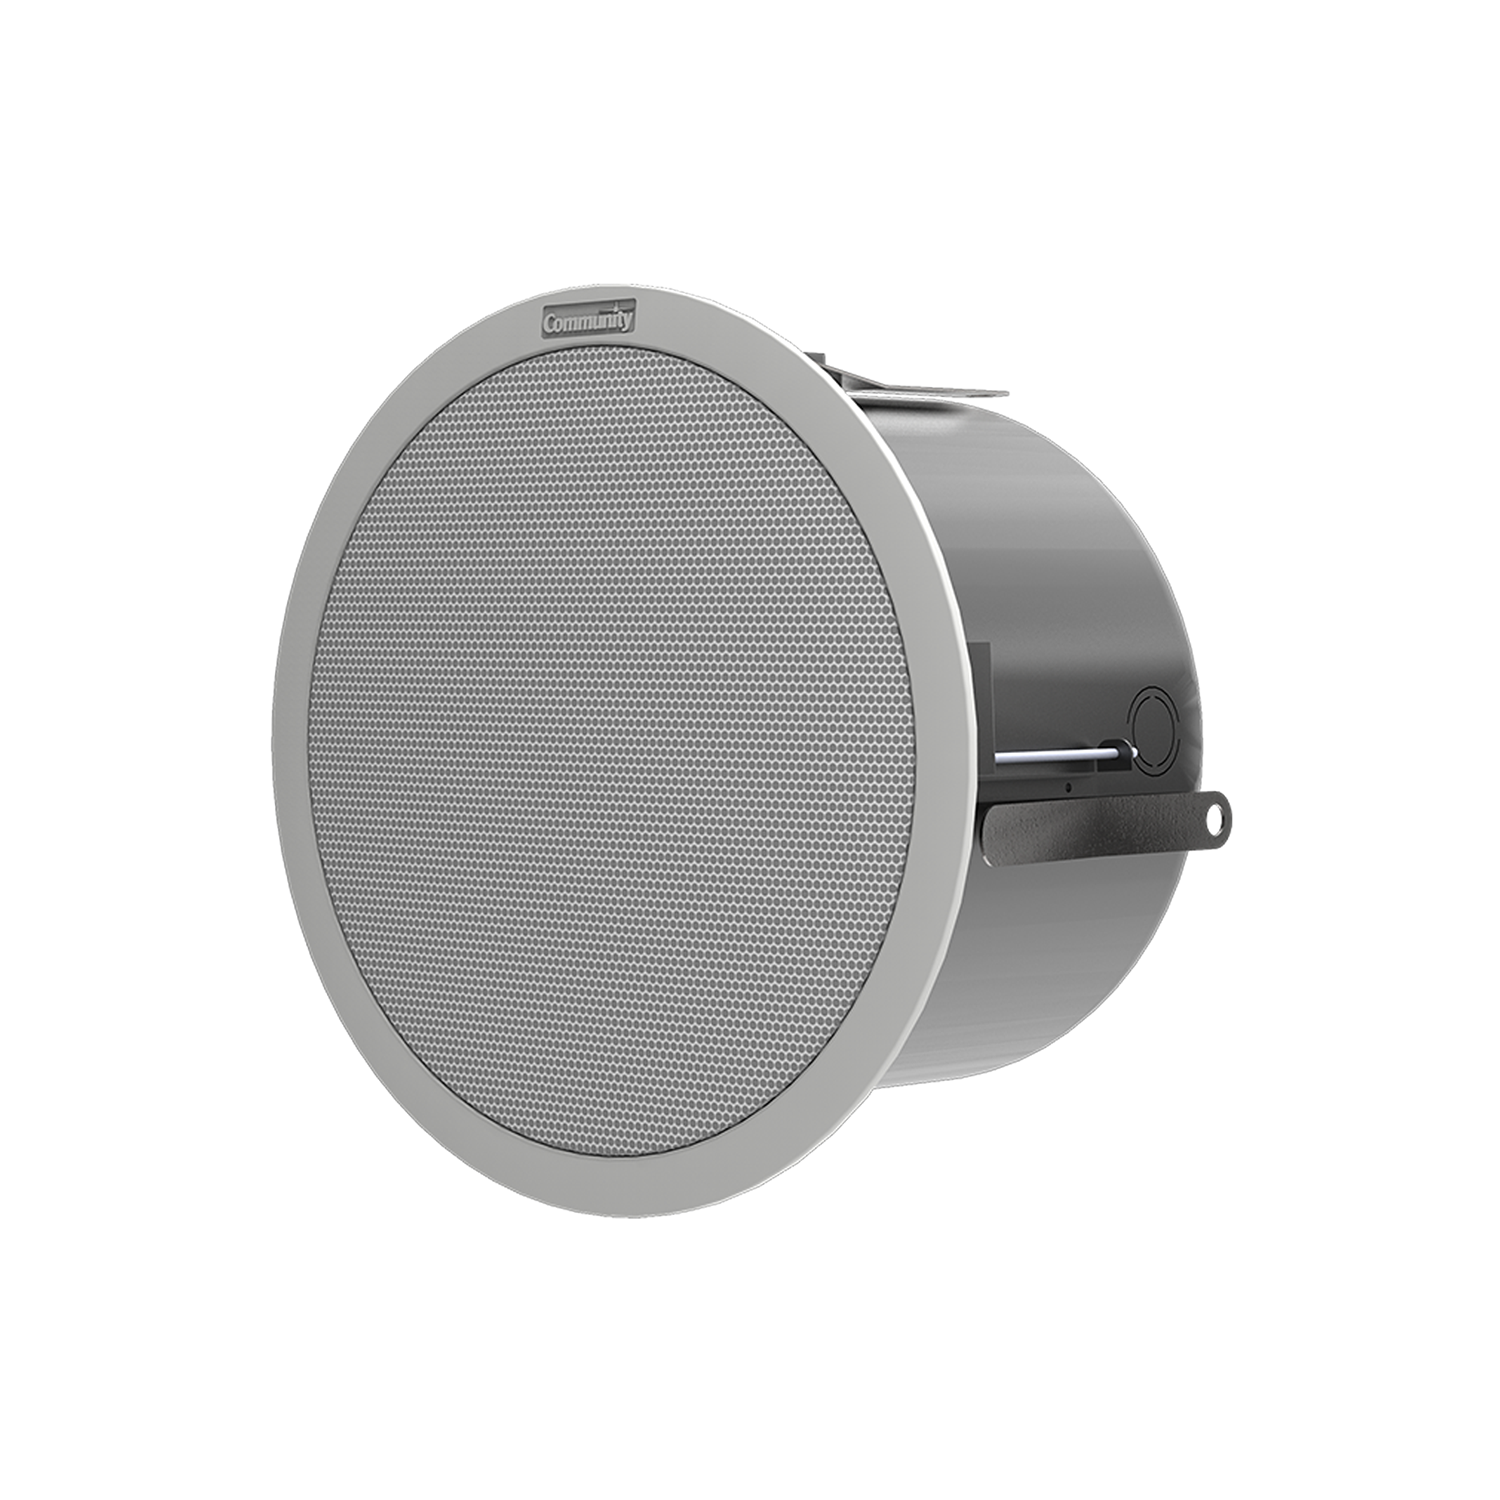 D6 Ceiling Loudspeaker - 6.5-inch High Output High Quality Two-Way